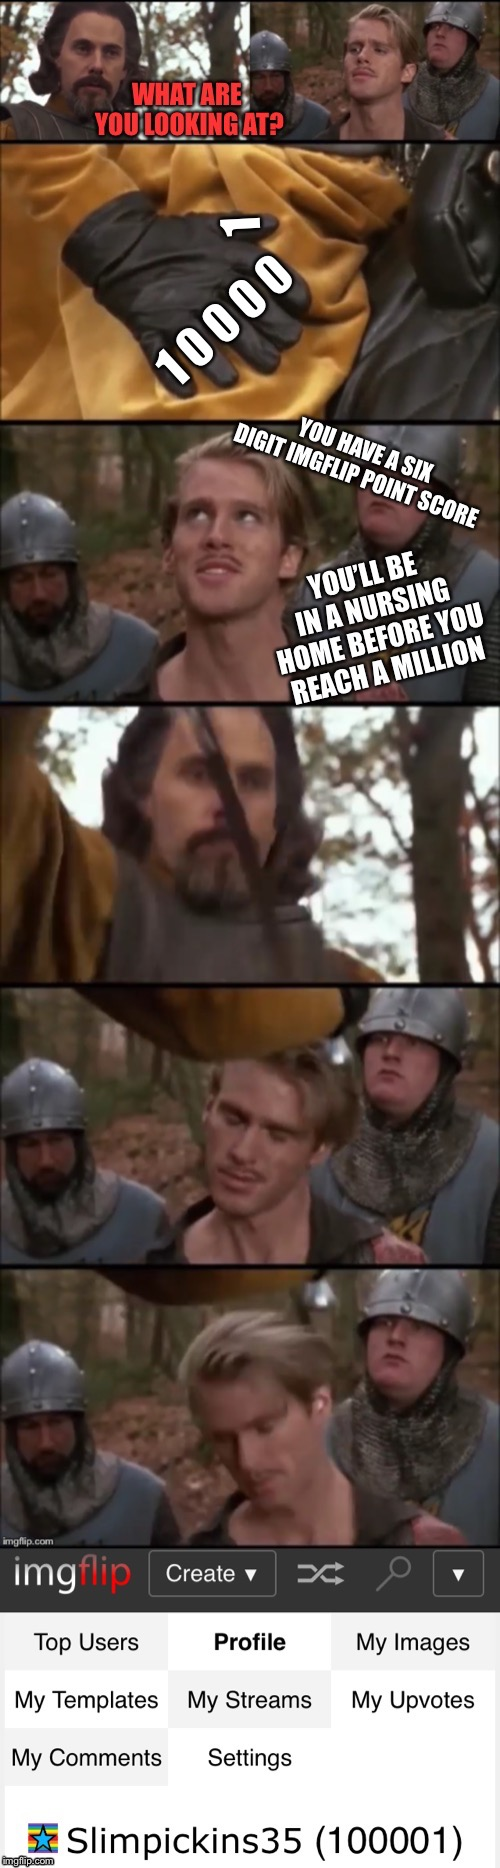 Thank you for wasting your precious time upvoting my stupid memes when you could be wasting your time upvoting someone else's | 1 0 0 0 0 1 | image tagged in 100000,imgflip points,goal,forest,princess bride,westly | made w/ Imgflip meme maker